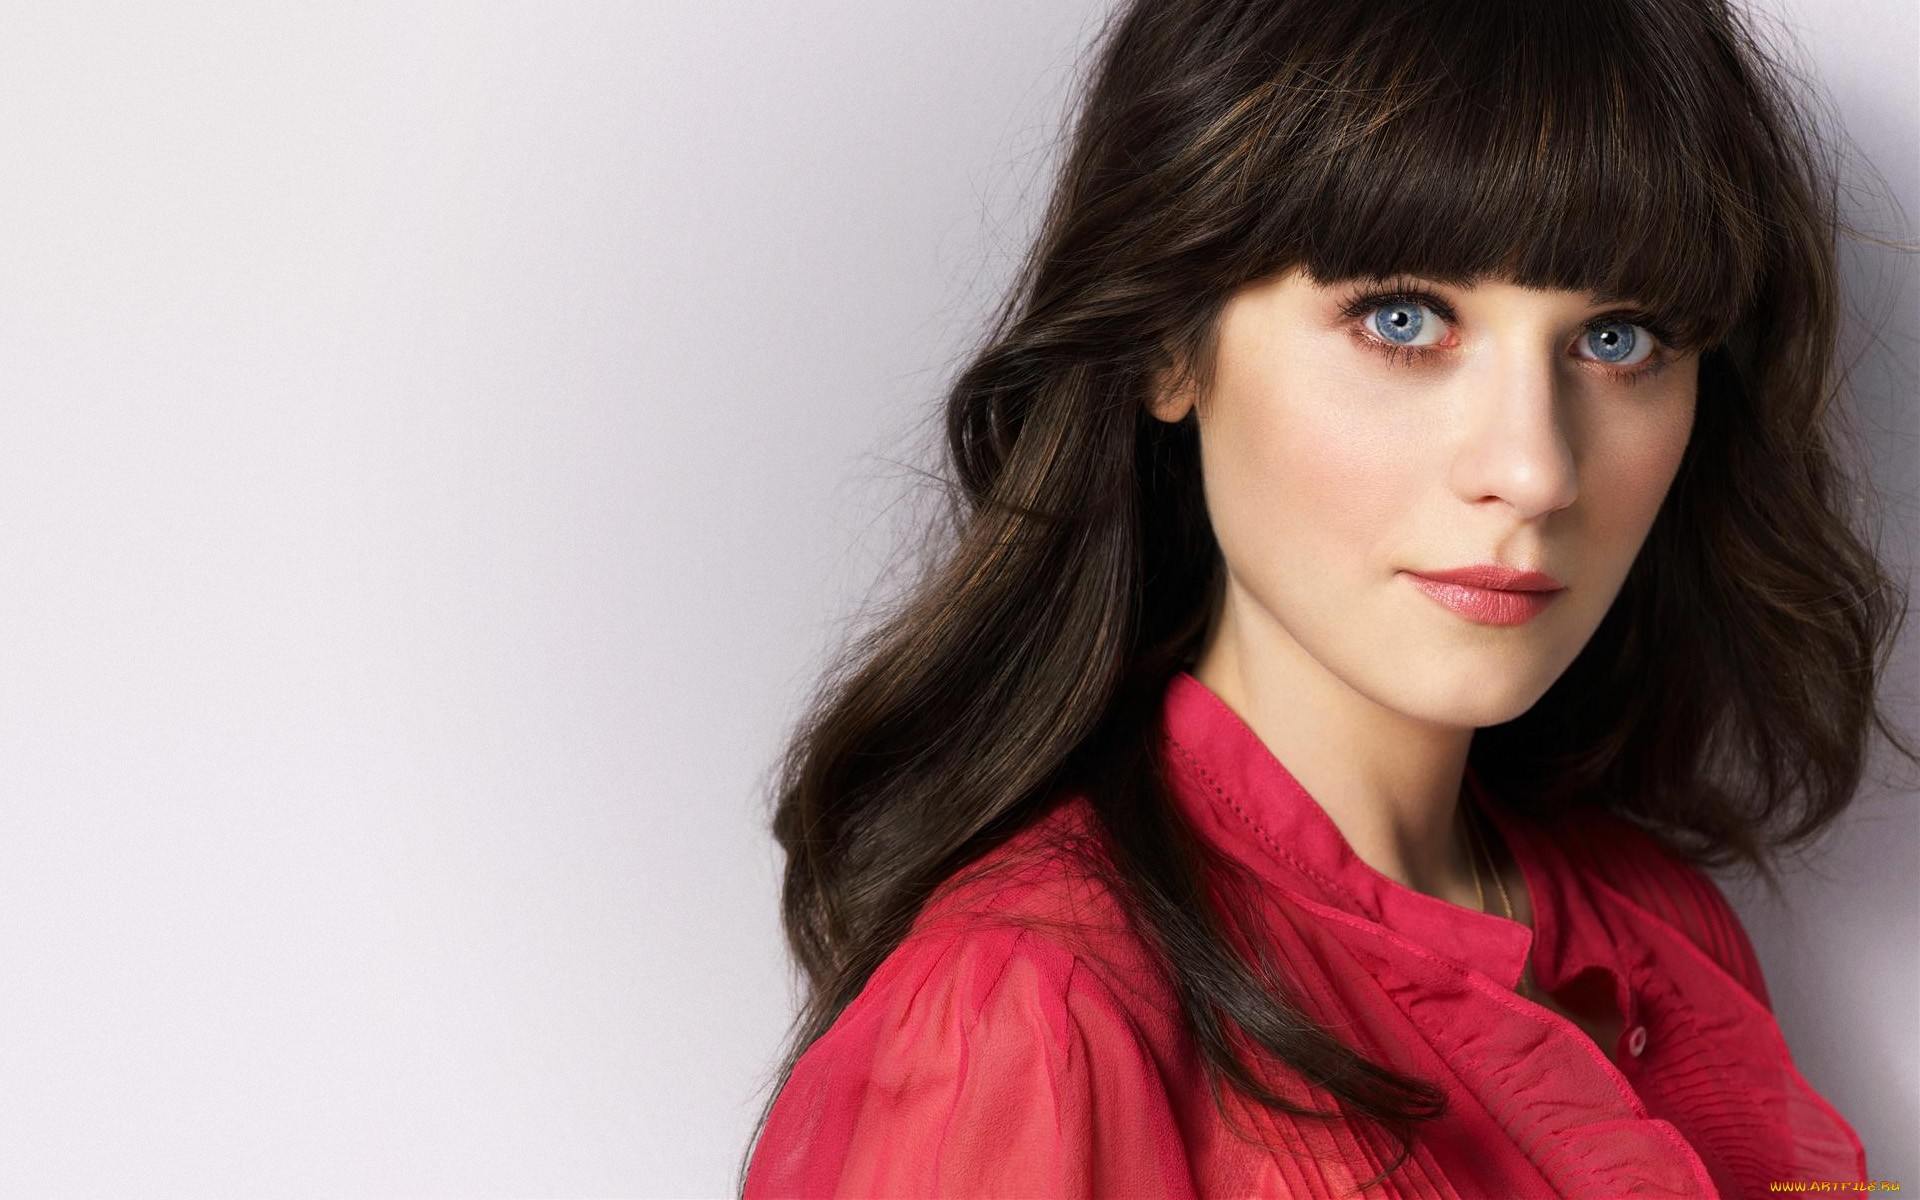 Zoey Deschanel Wallpaper